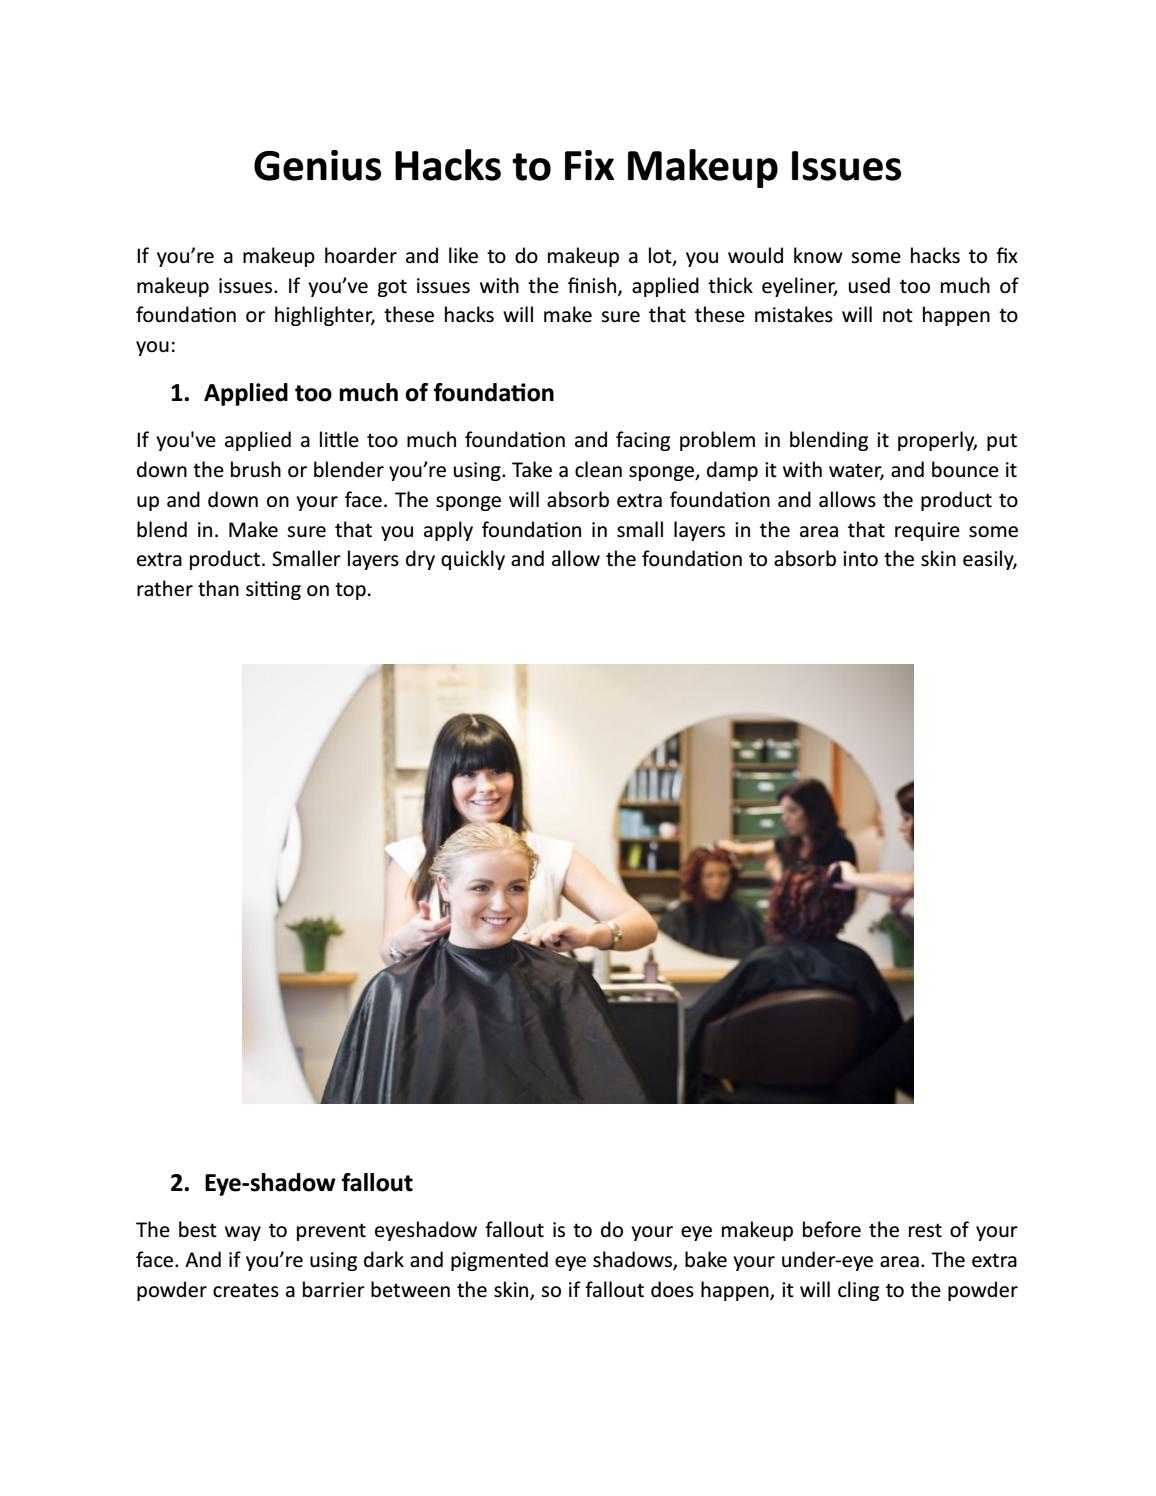 Genius Hacks to Fix Makeup Issues by Duvall School - issuu